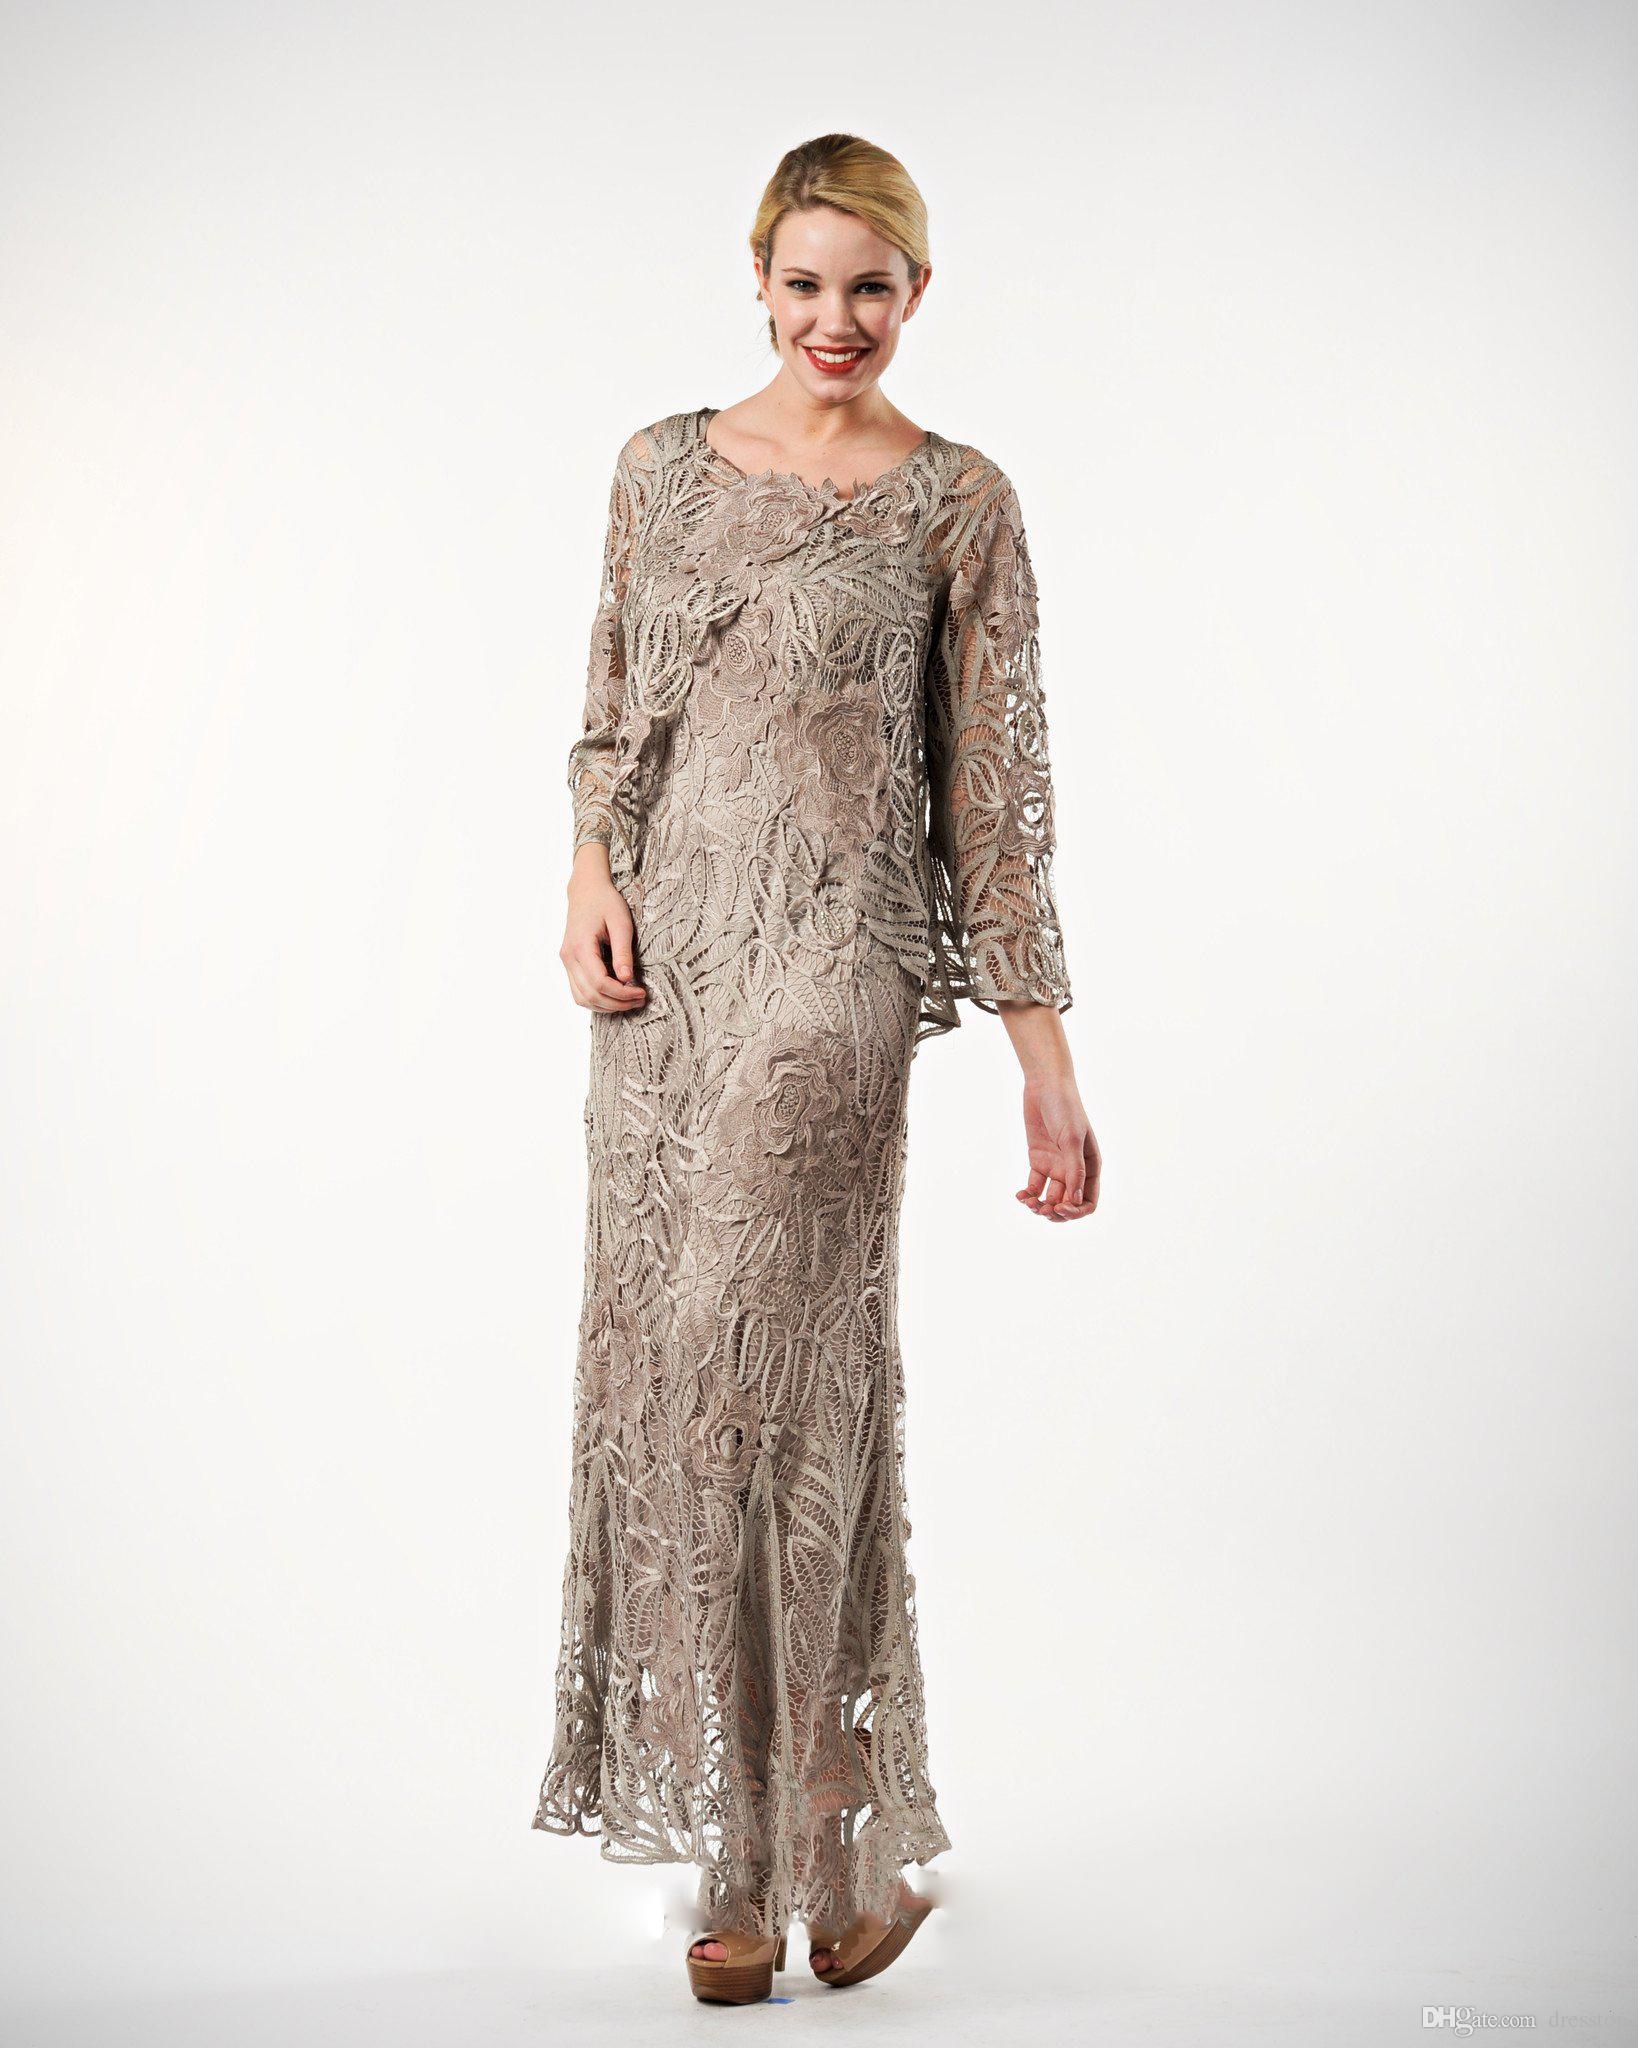 Plus Size Lace Mother Of The Bride Dresses 2018 Scoop Neck Evening Gowns  Ankle Length Sheath Wedding Guest Dress With Long Jacket Mothers Dresses  For ...